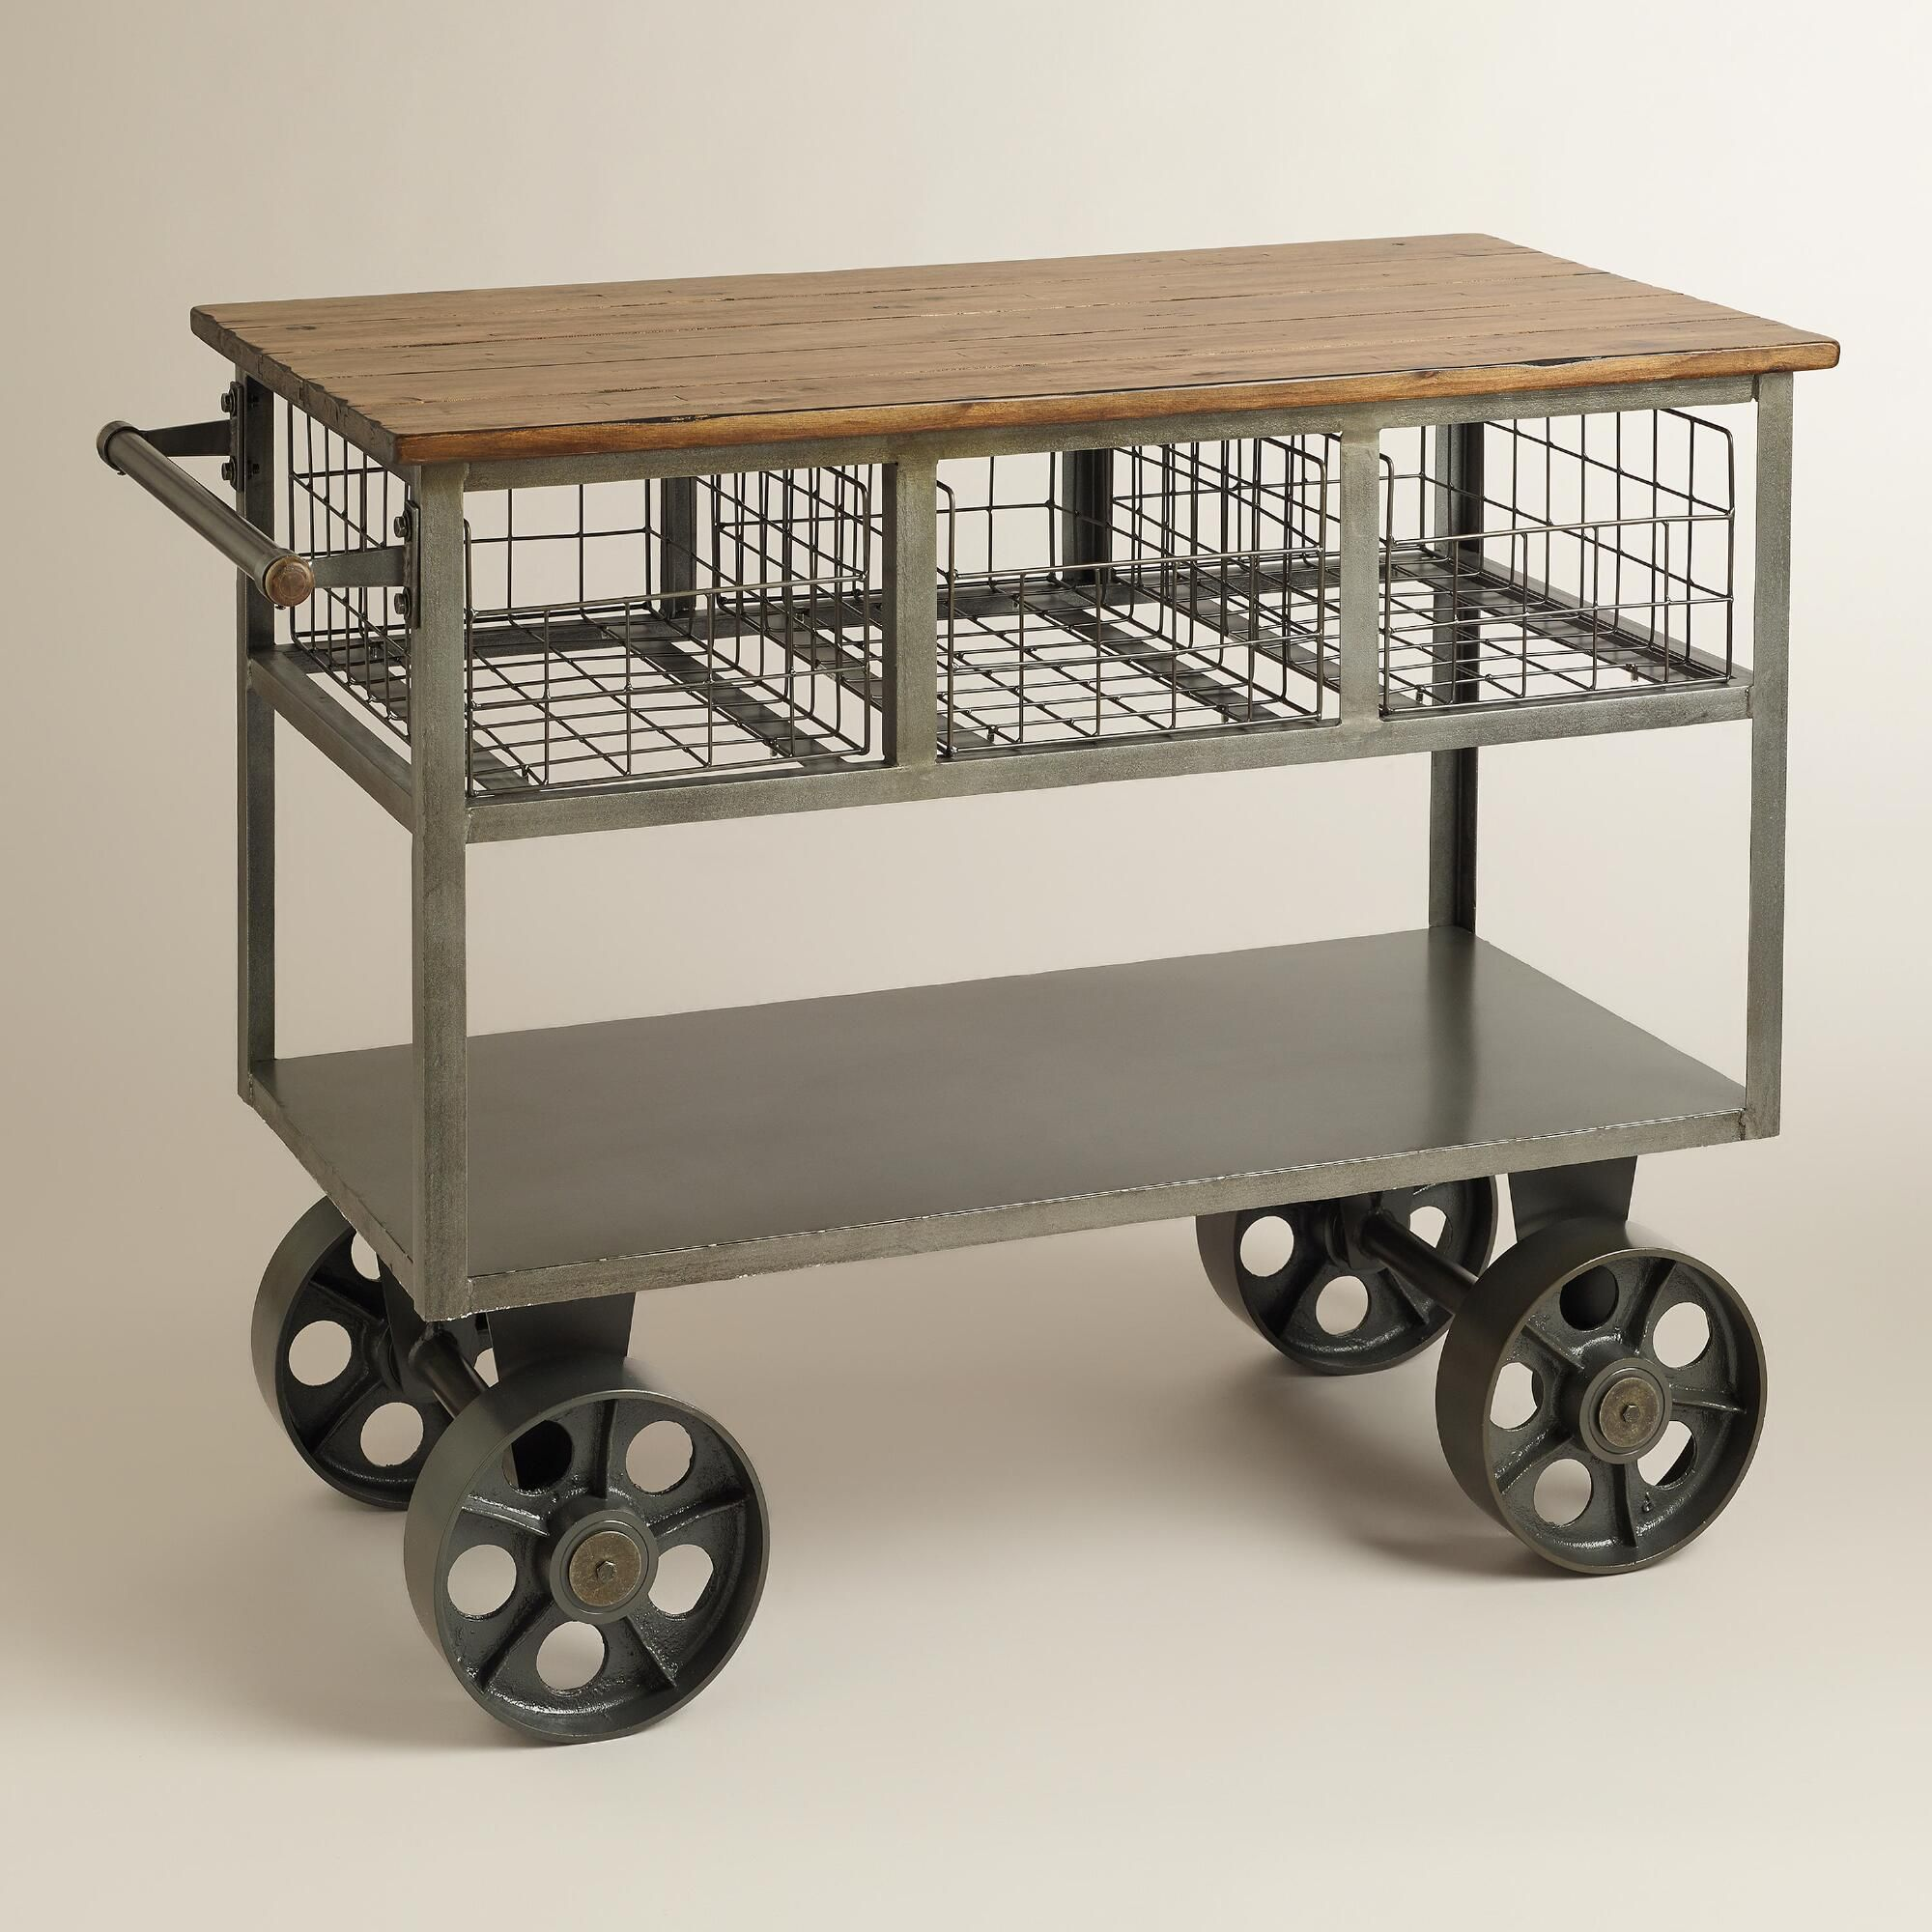 islands kitchen table cart standing awesome and island free full carts of rolling ikea countertop with trolley tray on size wheels portable seating canada wood ideas unit